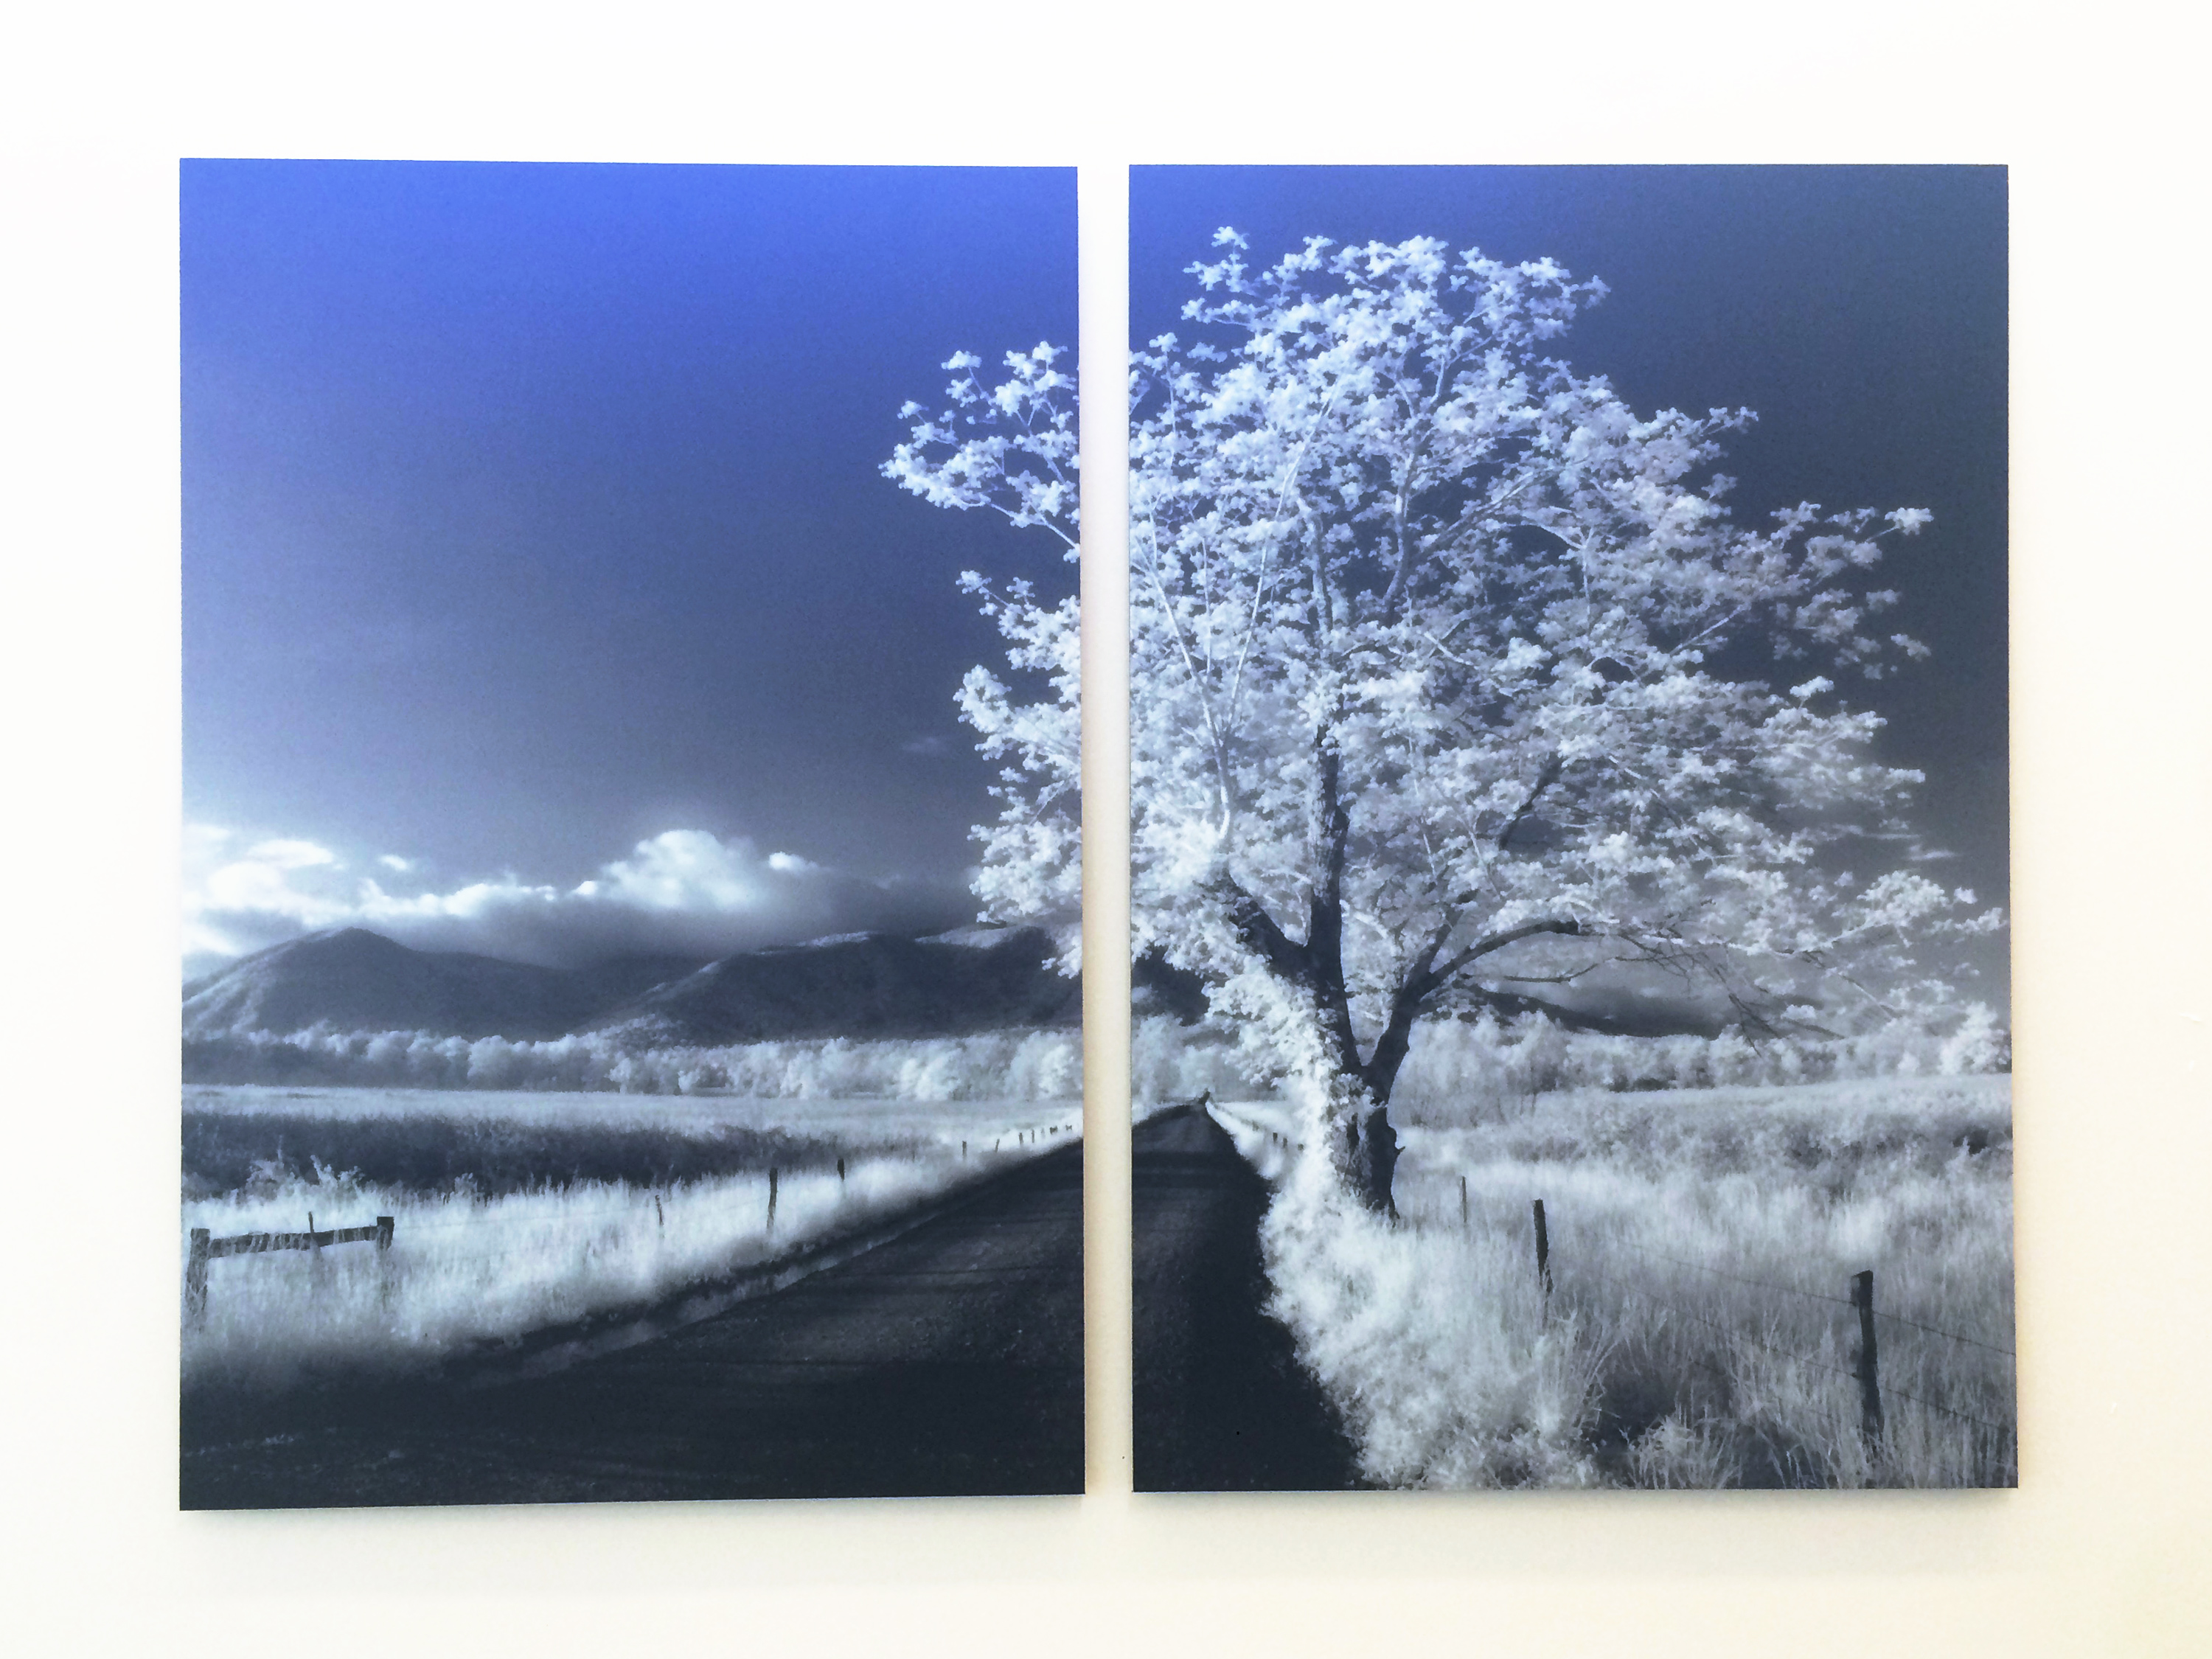 Photo of a snowy tree image on Moxie panels in hospital waiting area